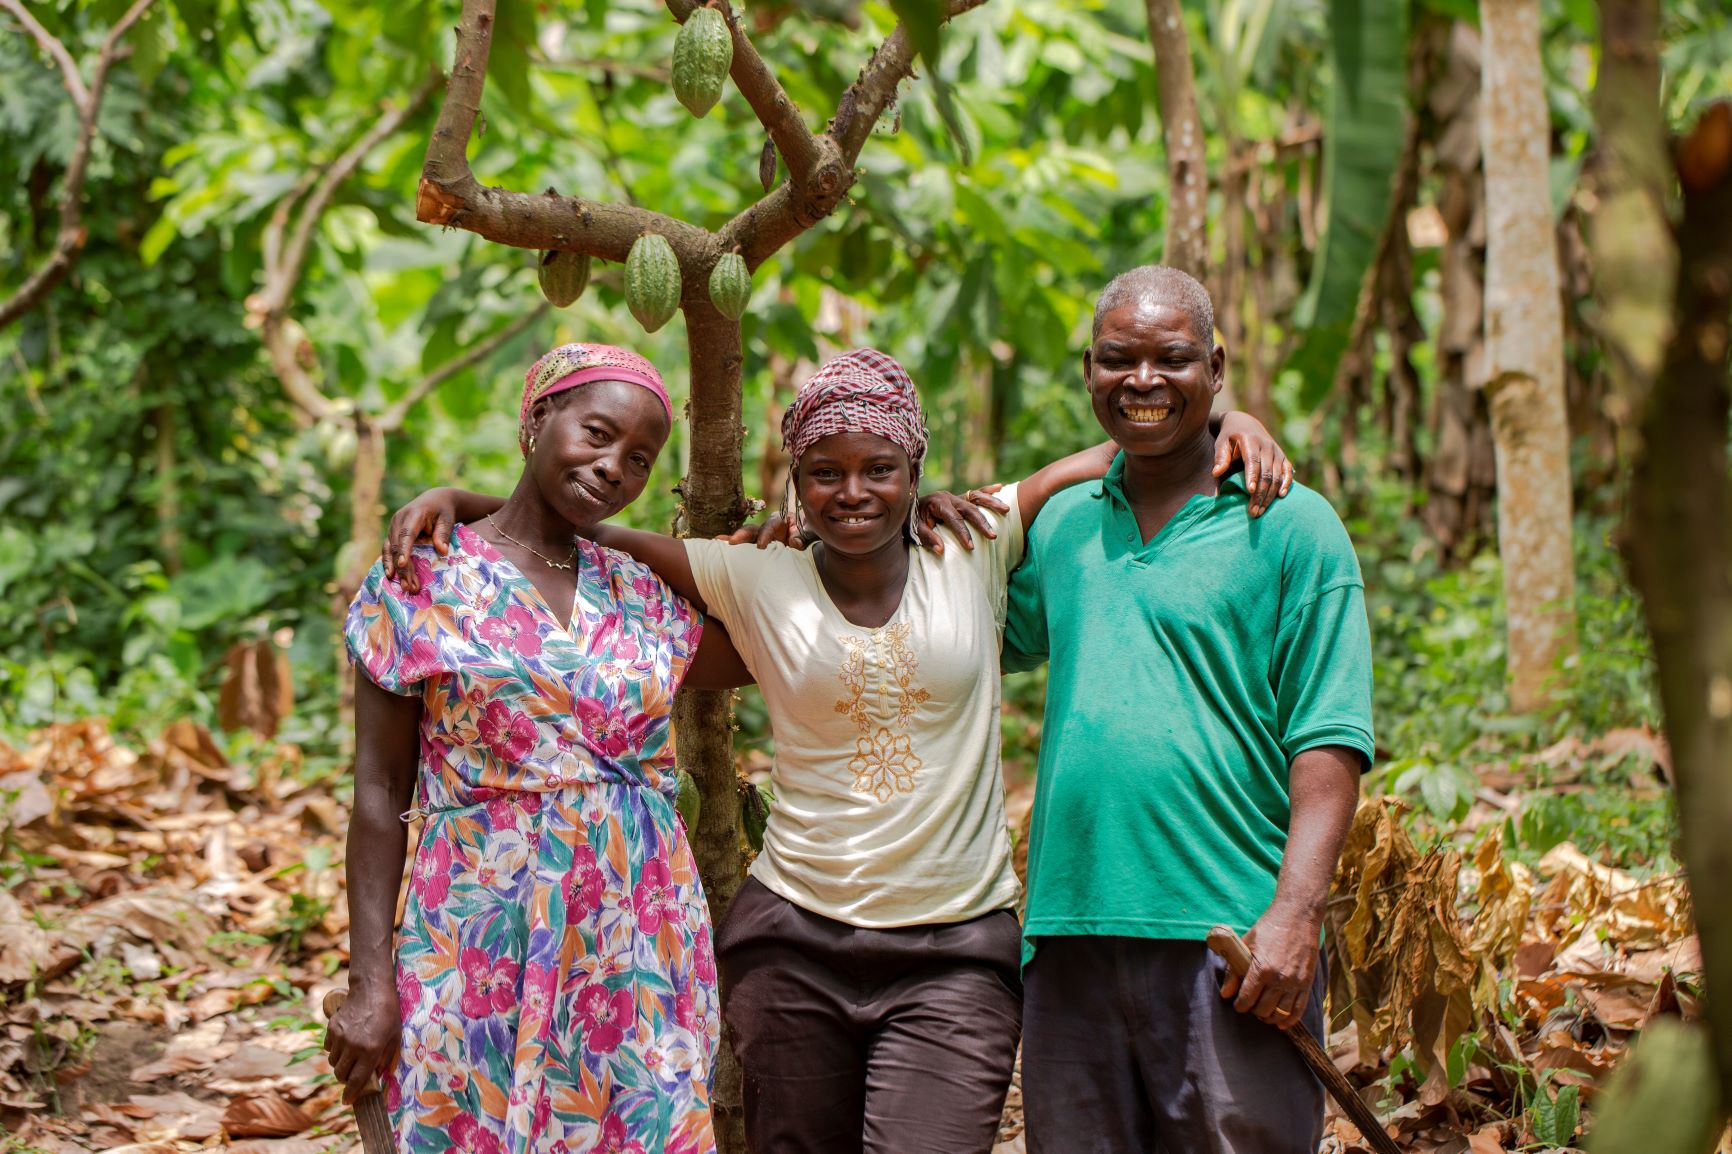 Mawuse Hotor (middle) and her parents, Mary Ahotor and Gabriel, cocoa farmers in Ghana